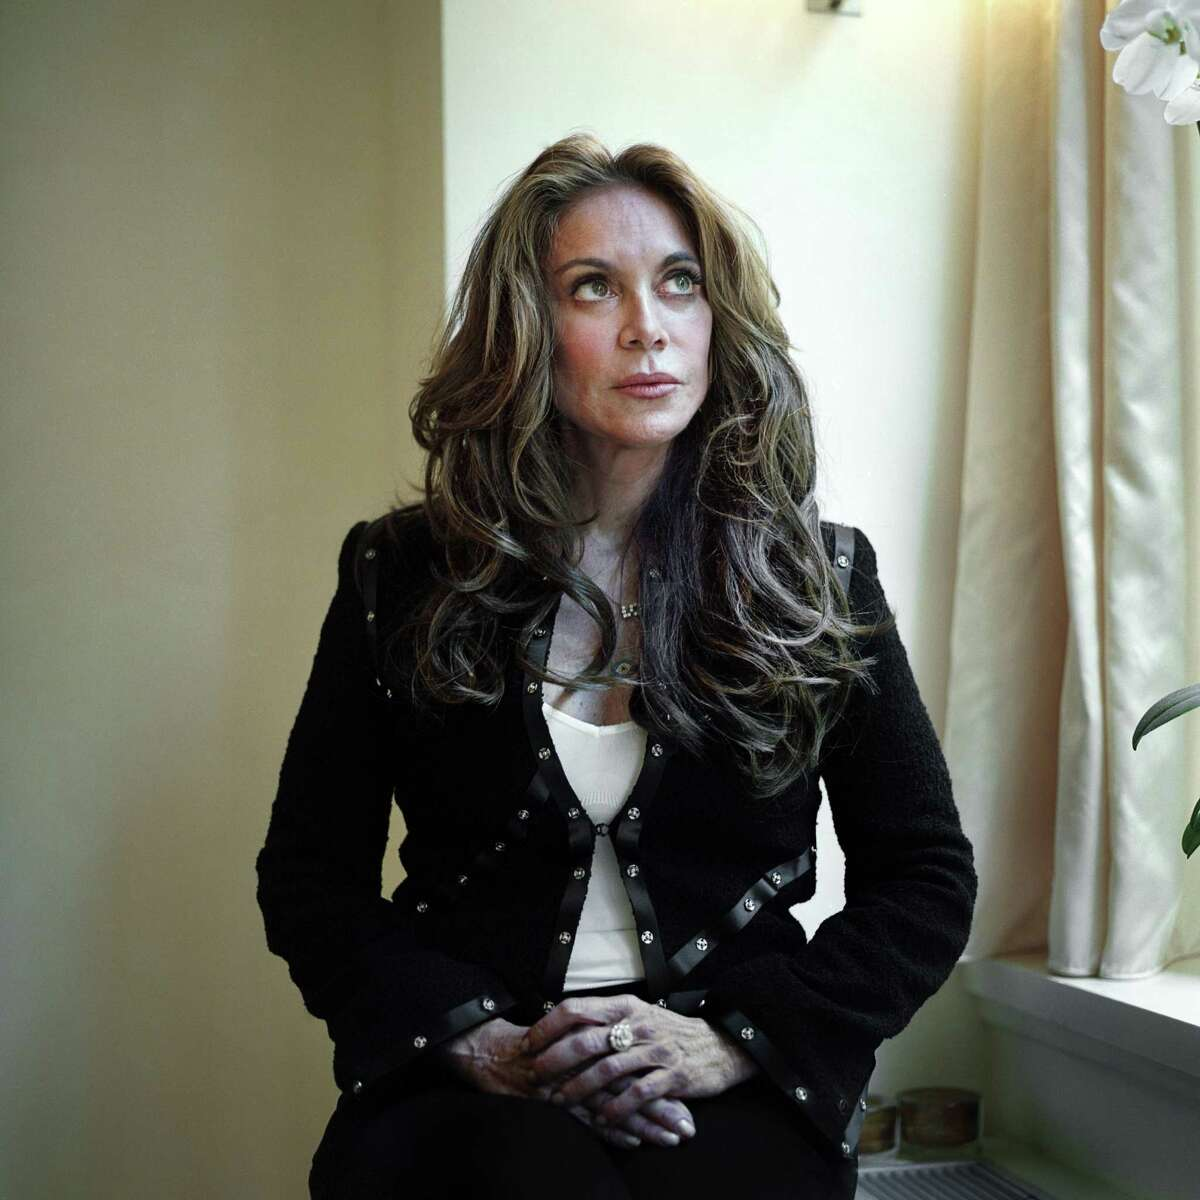 Who is Pamela Geller? Continue to find out.